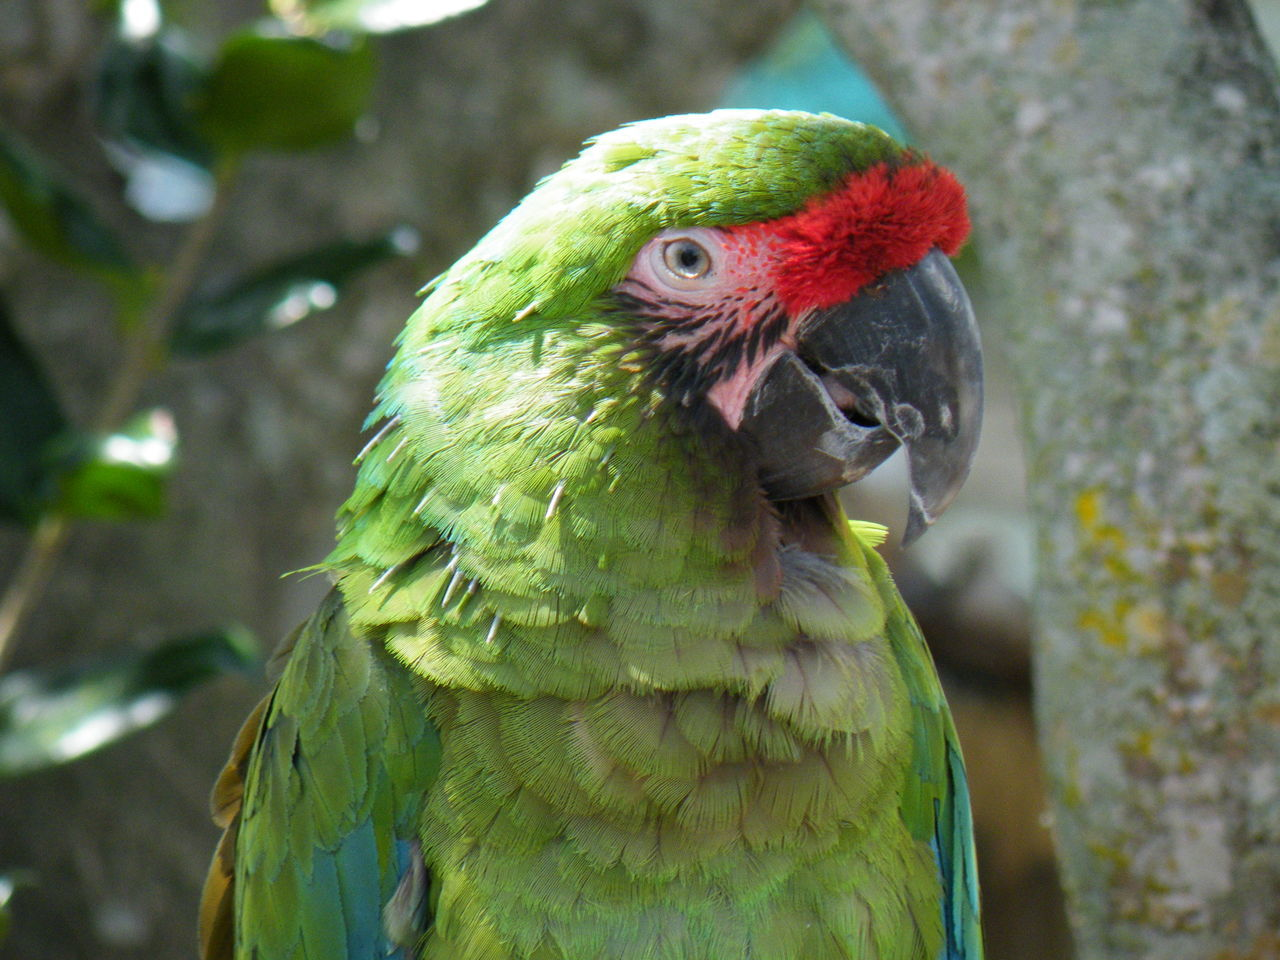 Parrot Animal Themes Animal Wildlife Animals In The Wild Beak Bird Close-up Nature No People One Animal Outdoors Parrot